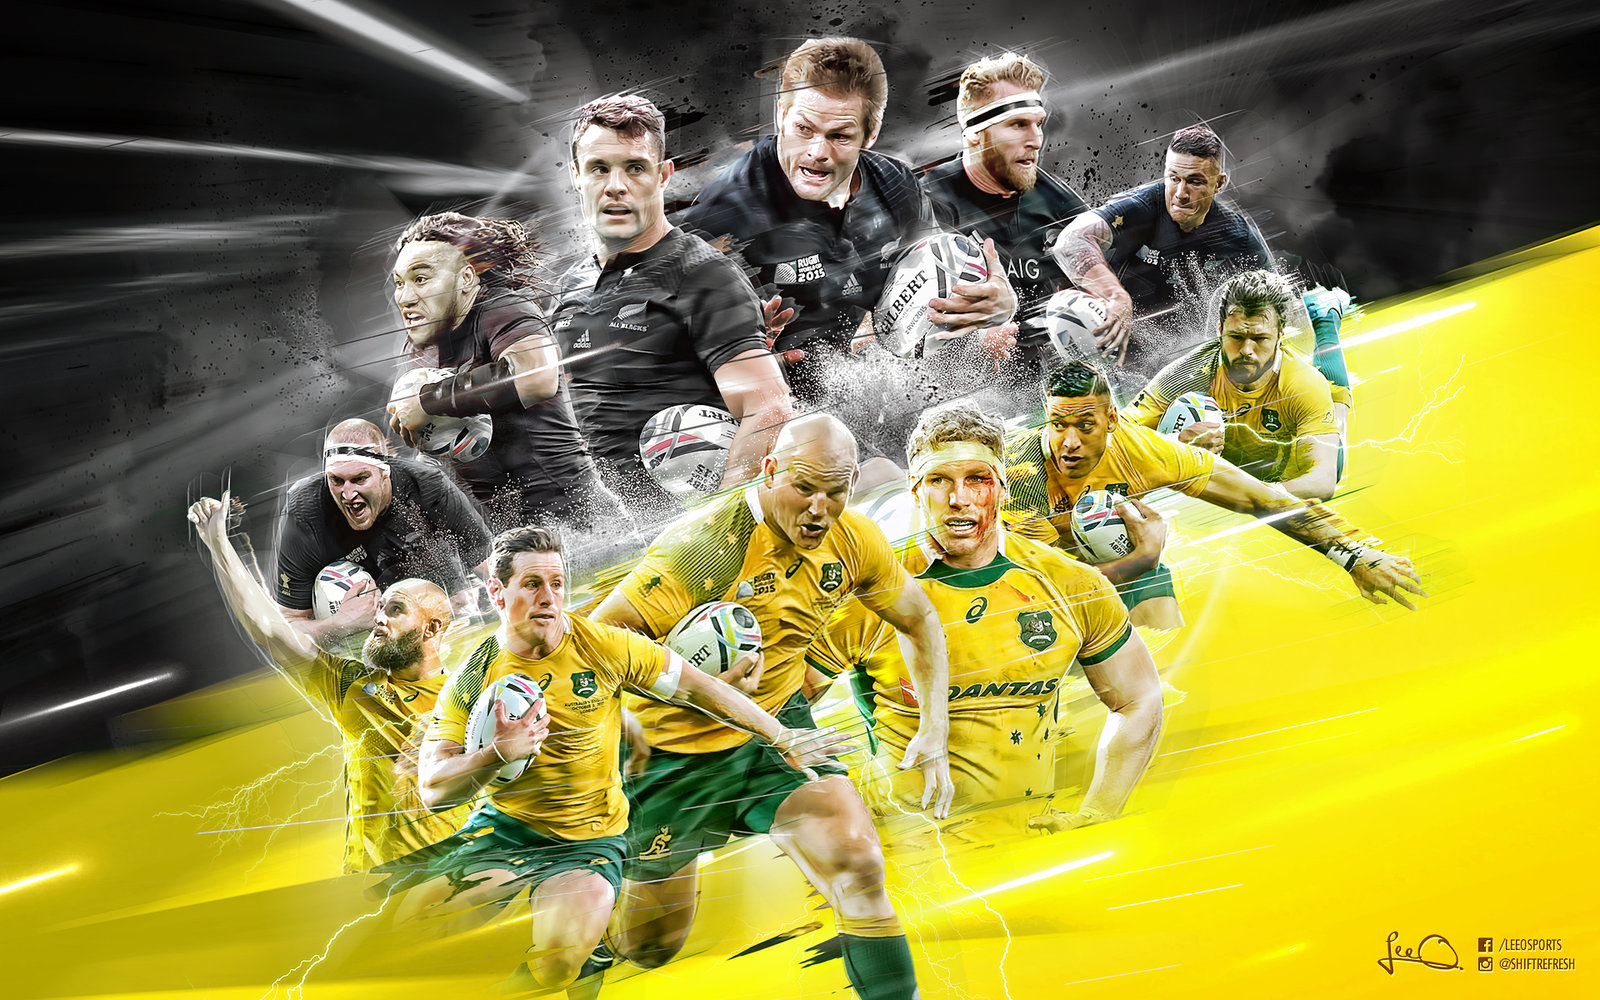 1600x1000 - Rugby World Cup 2015 Wallpapers 8